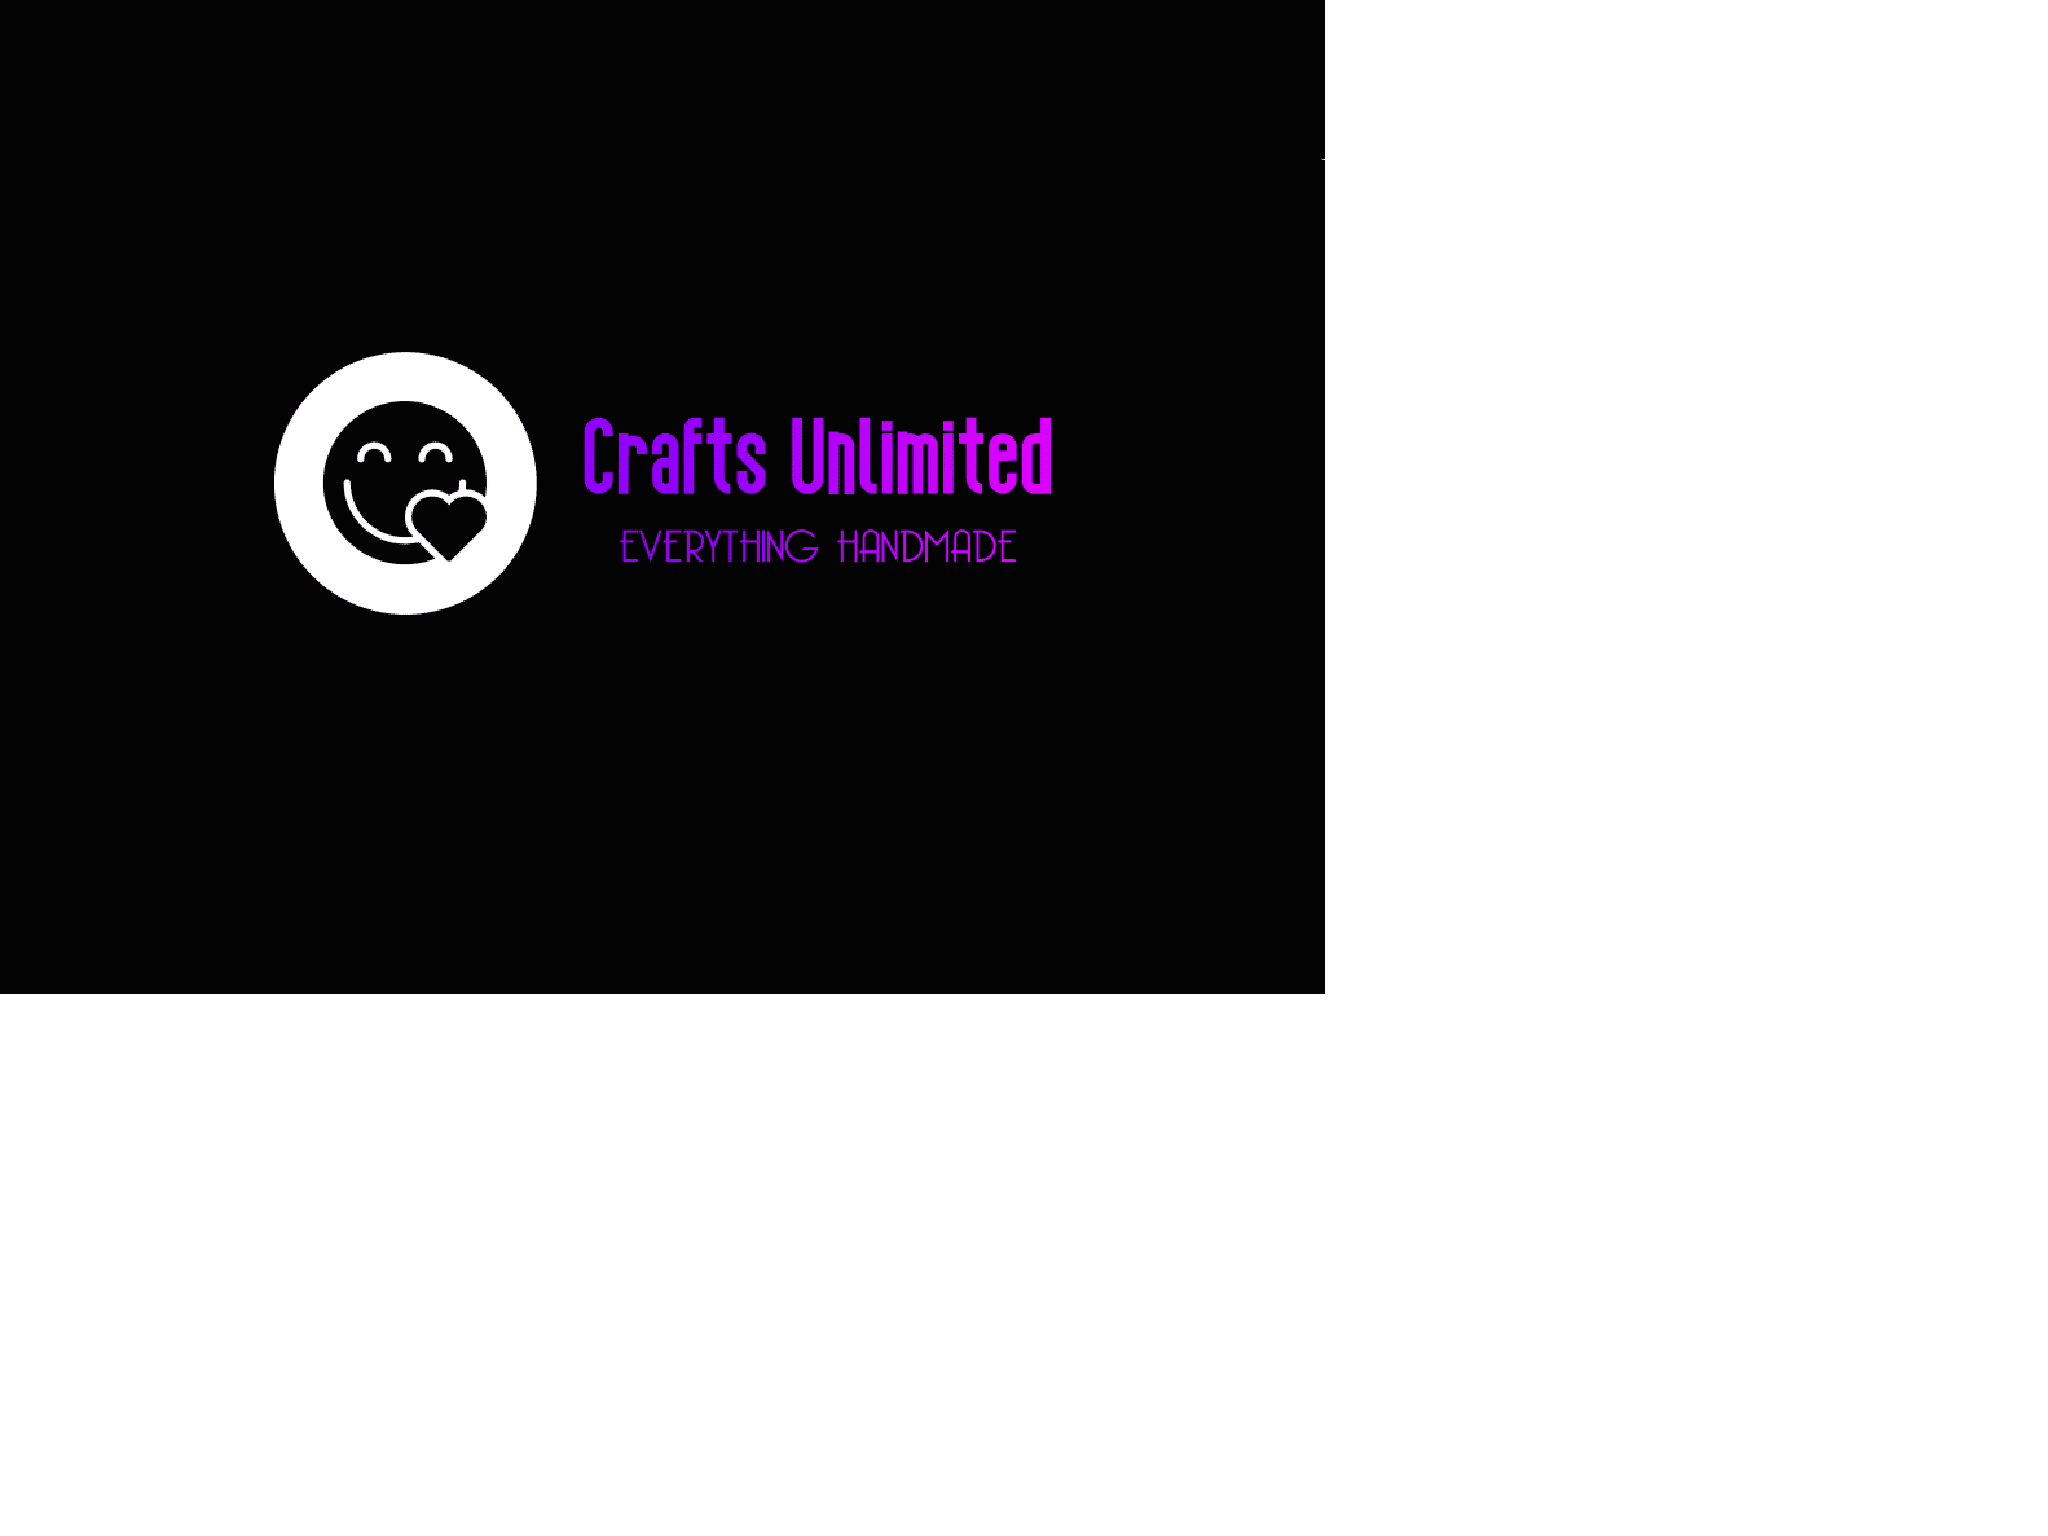 Crafts Unlimited